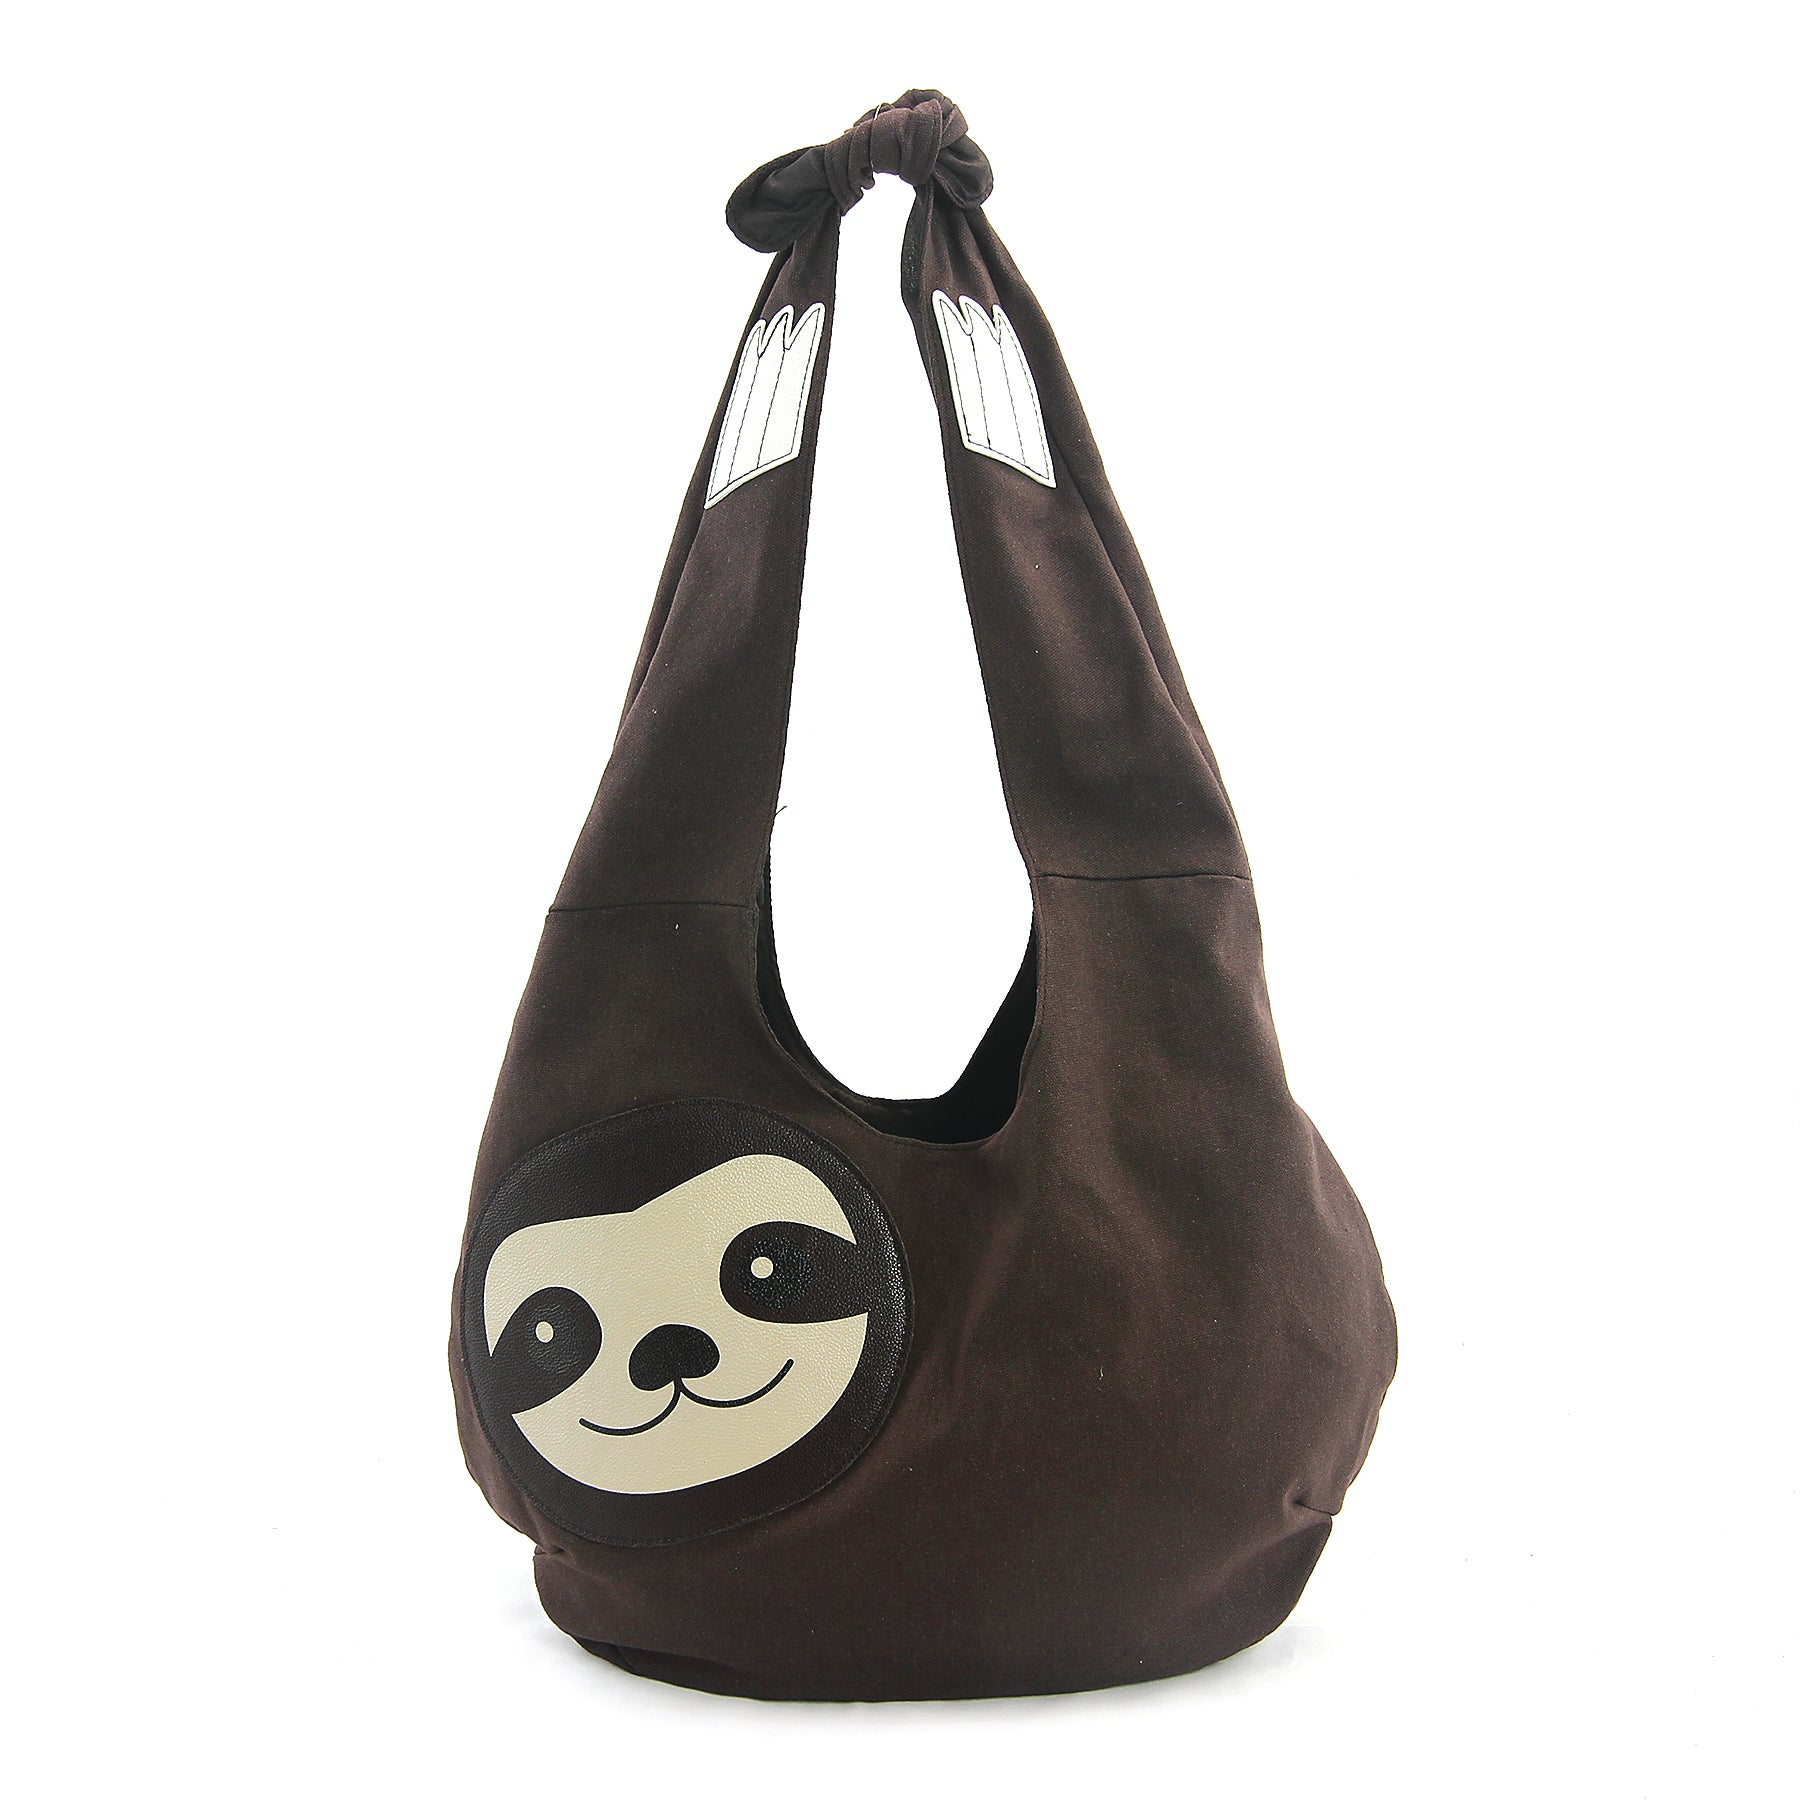 Sloth hobo bag front view